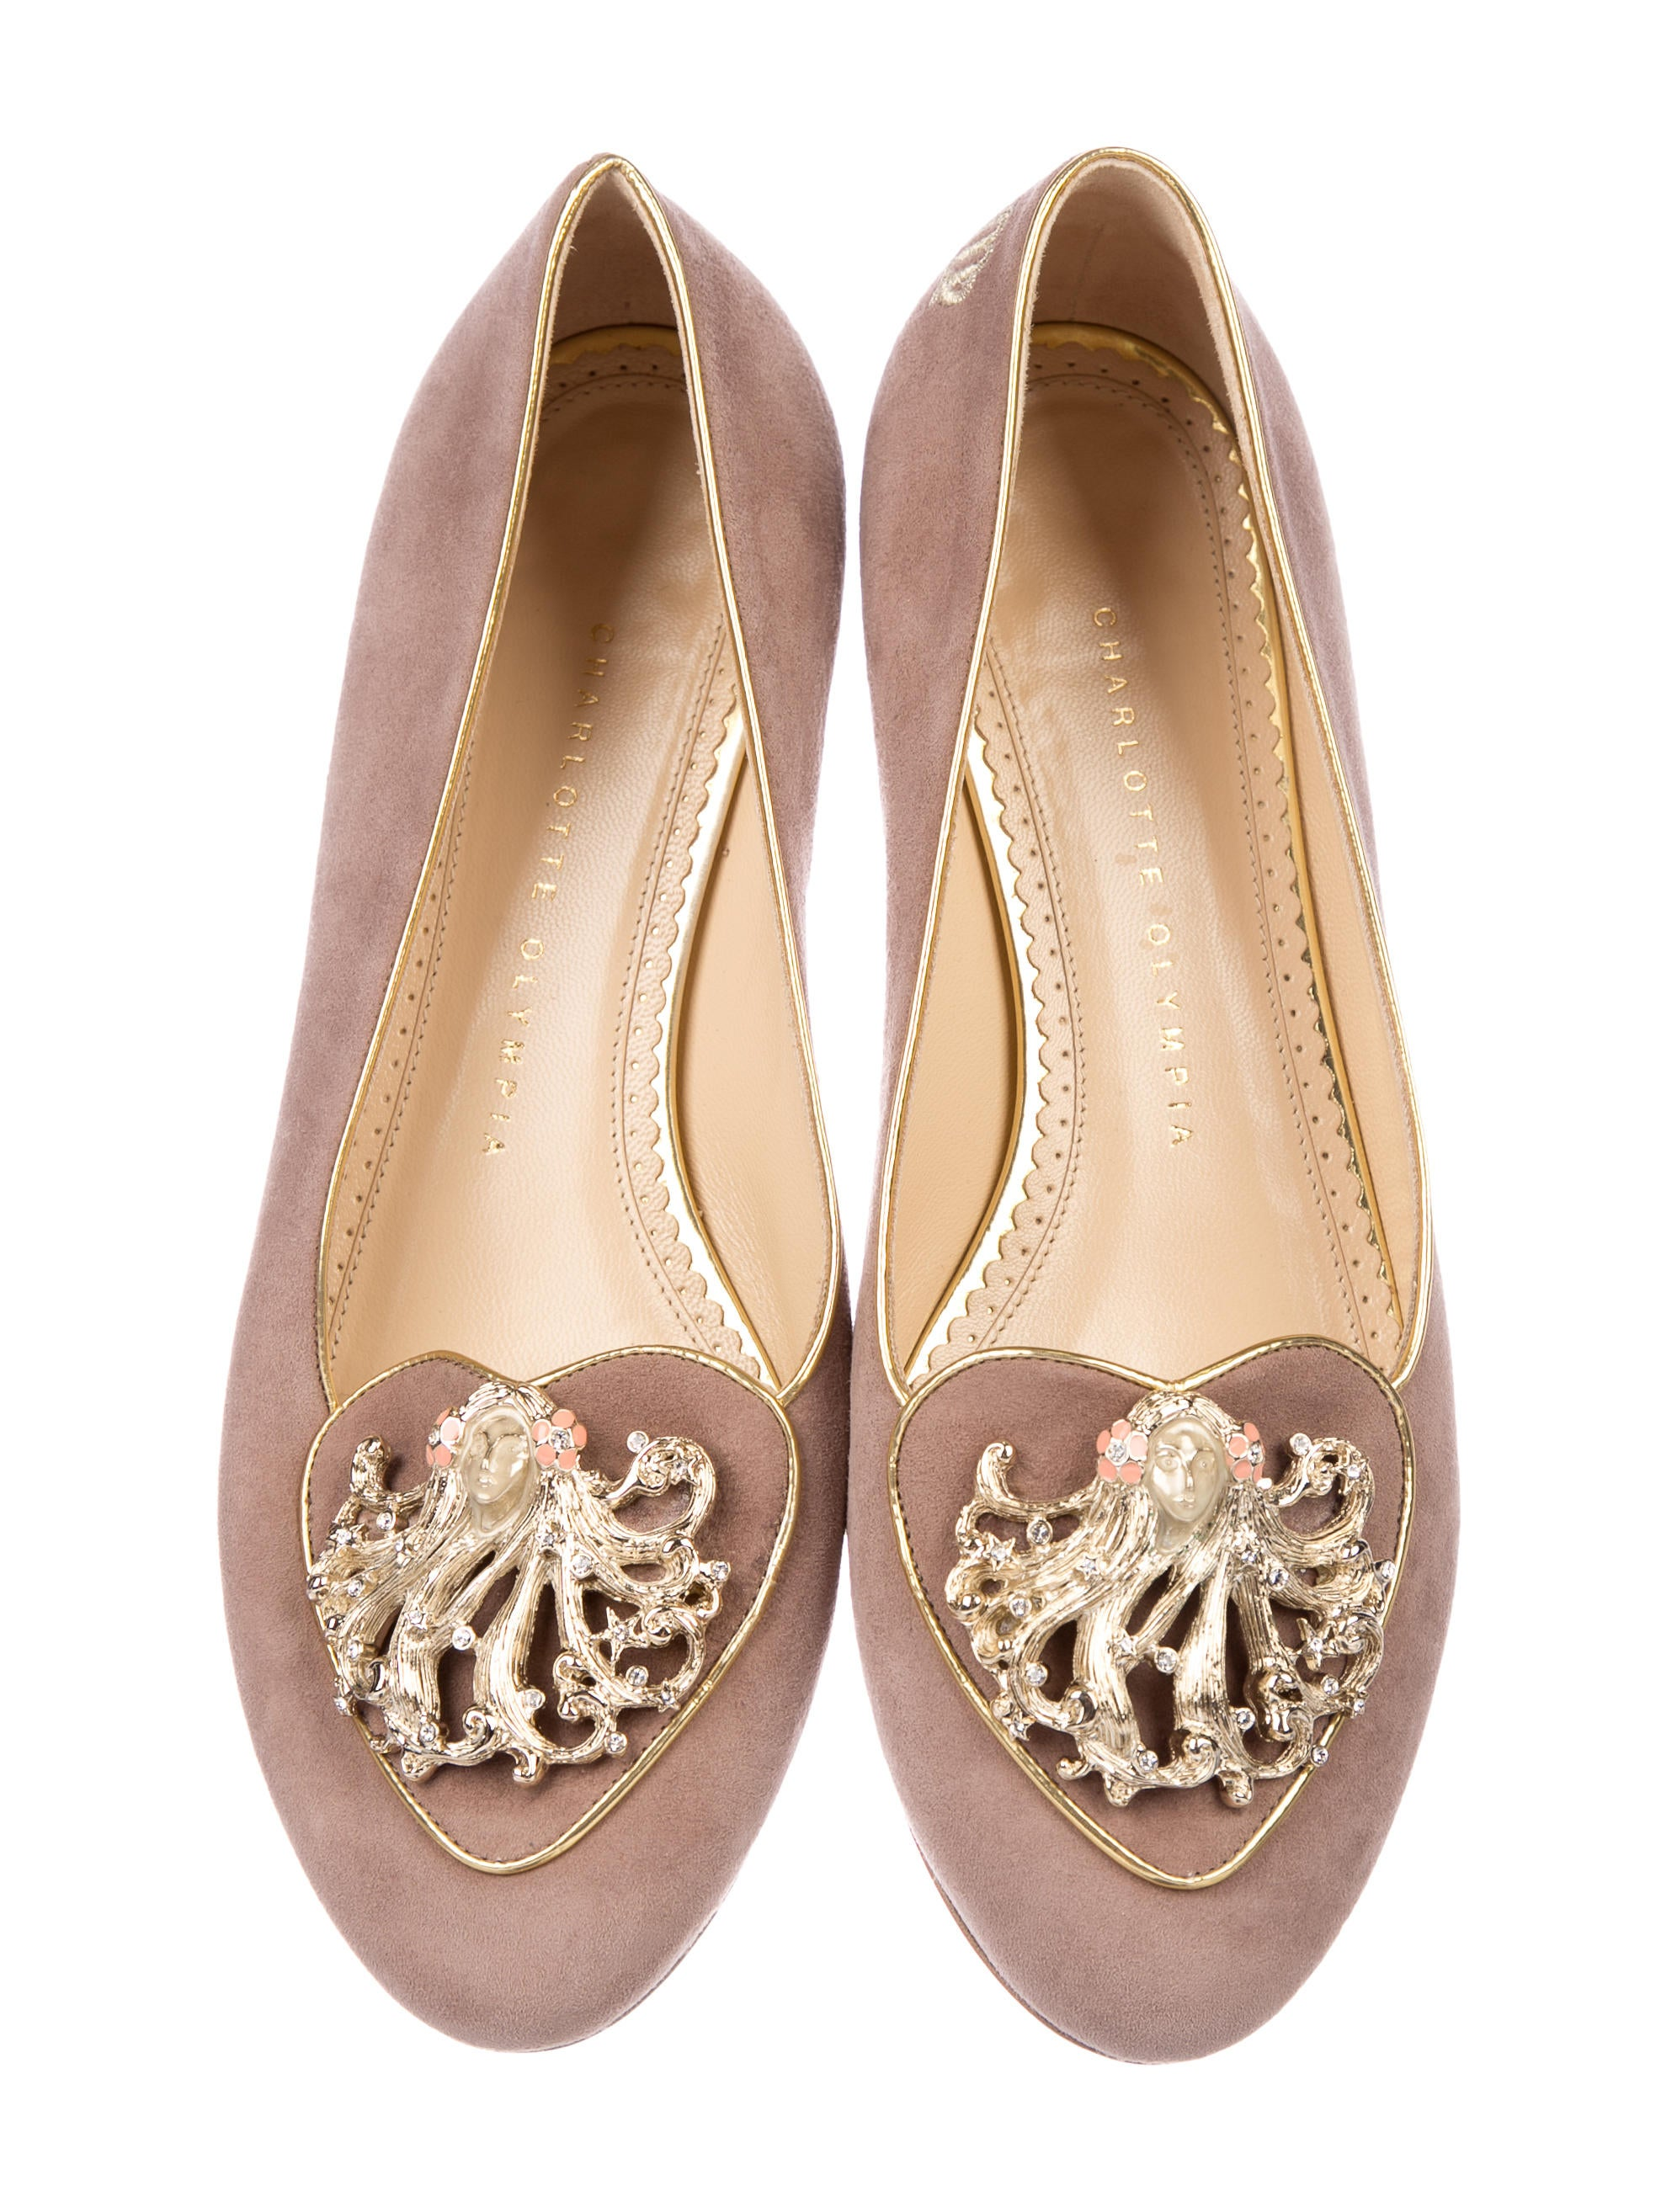 collections cheap price cheap 2015 new Charlotte Olympia Suede Virgo Flats with paypal cheap price LiaVGck5wM